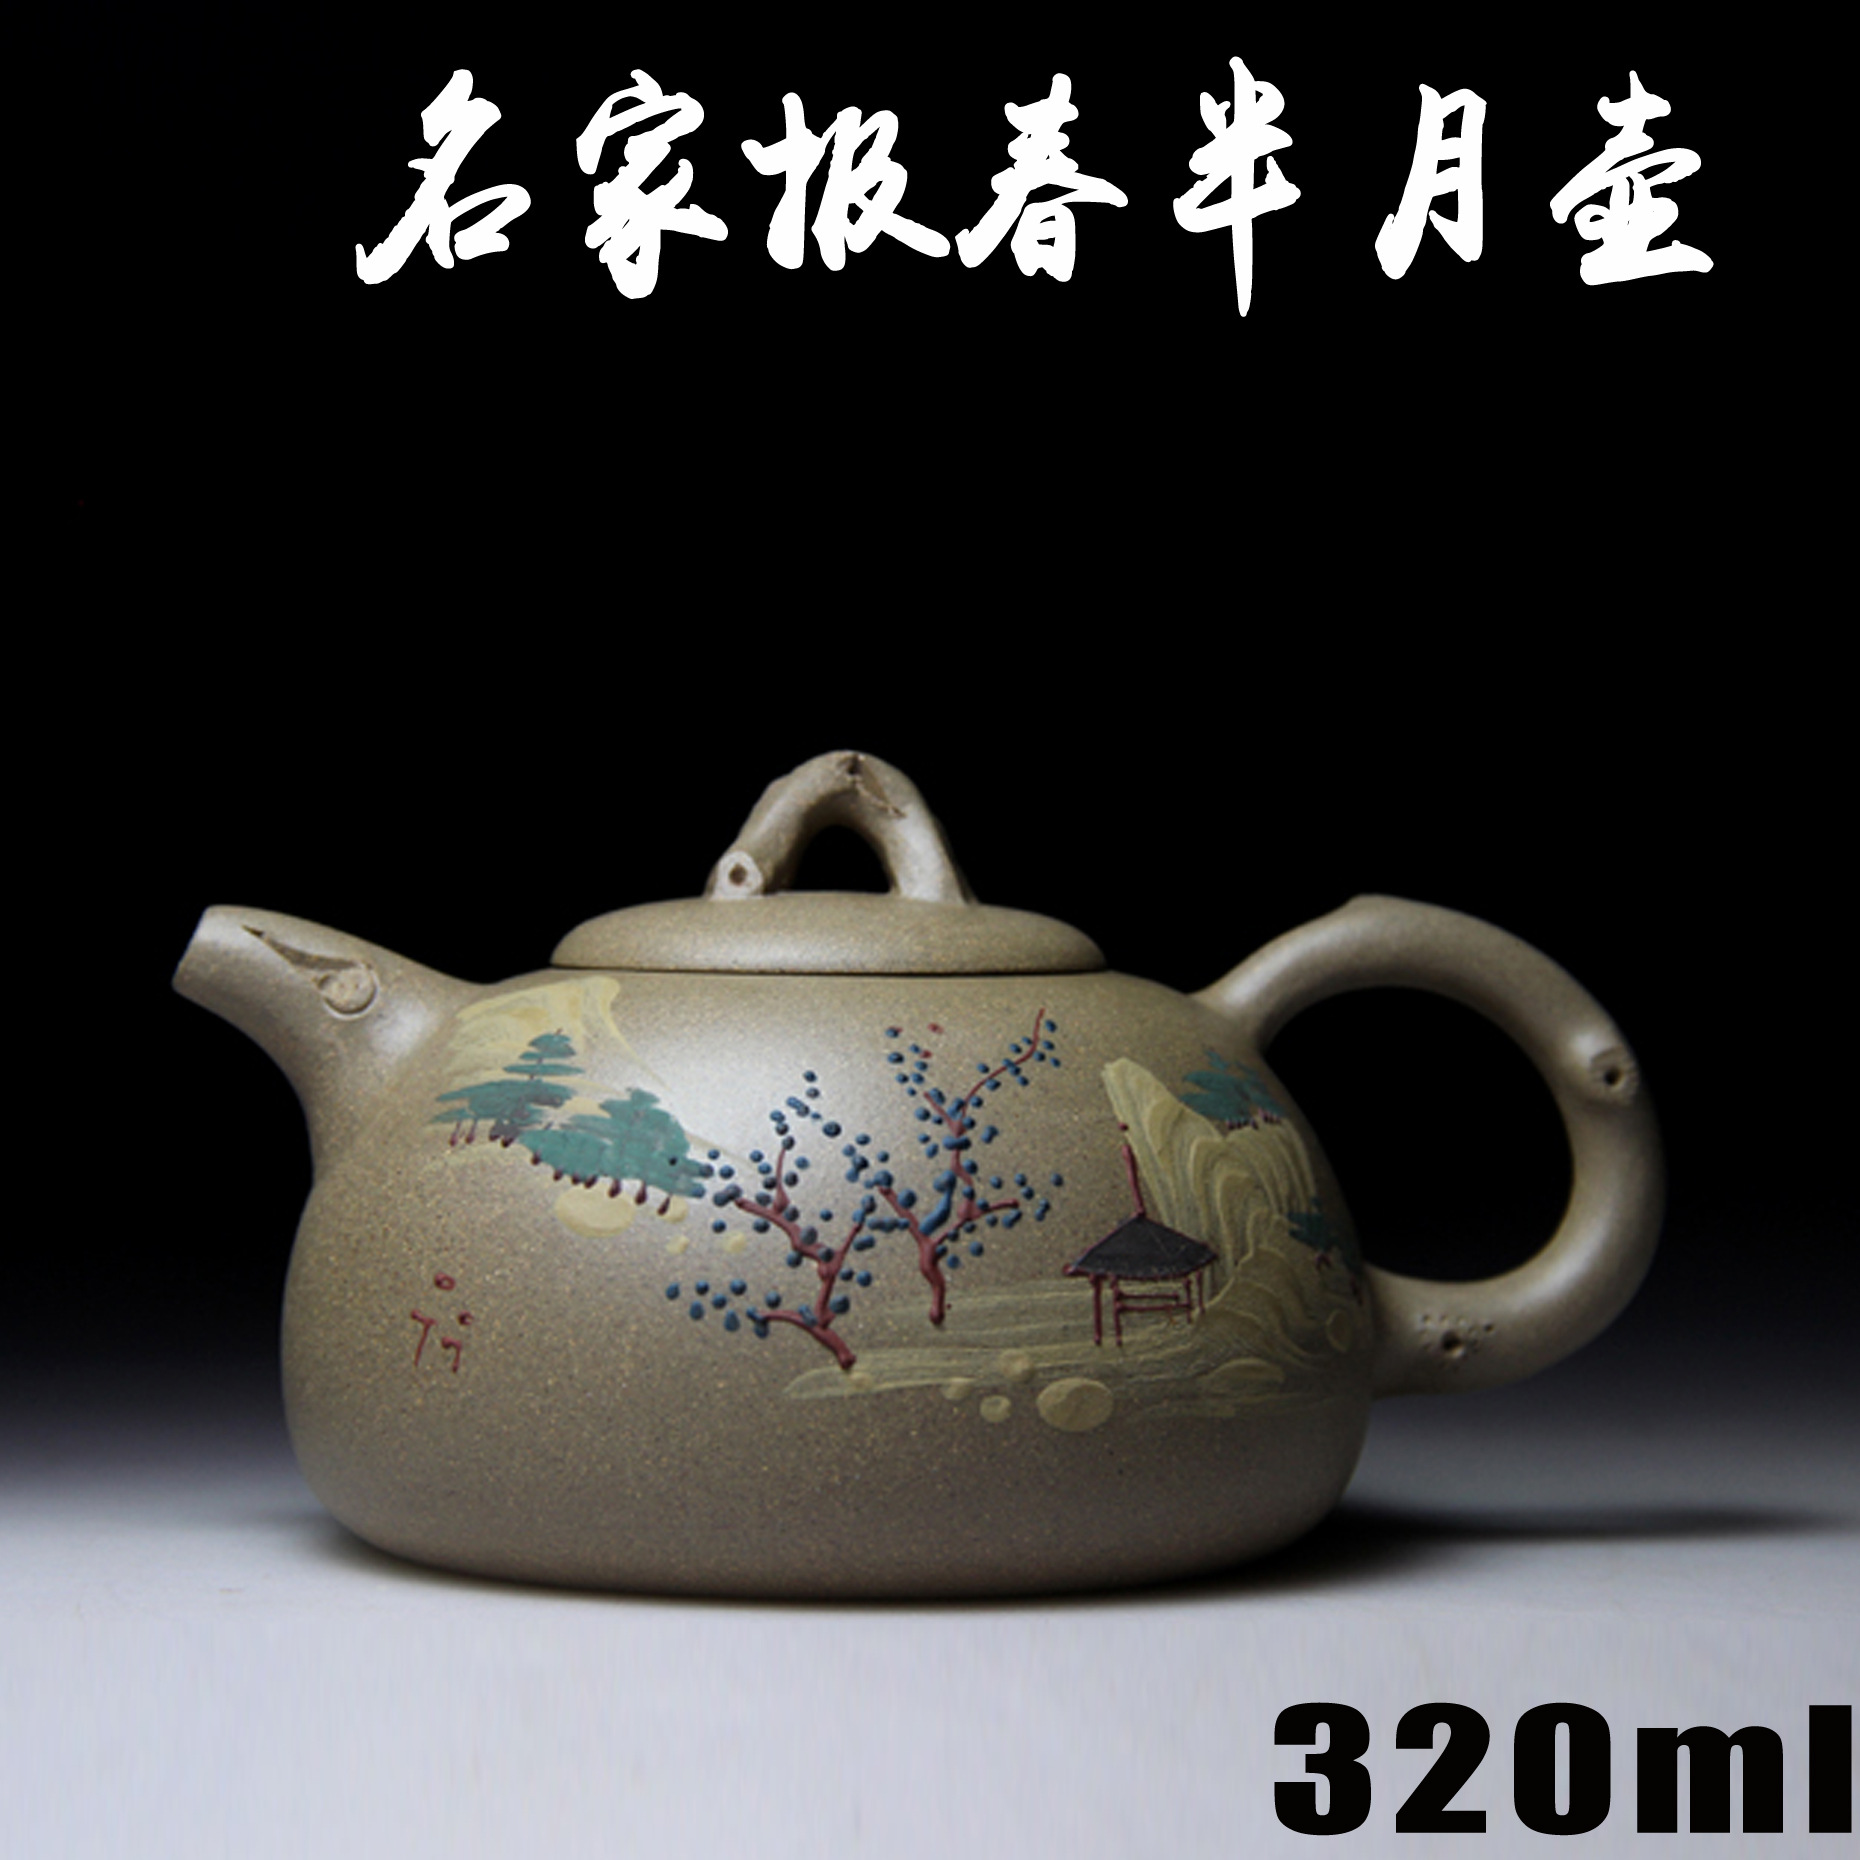 Authentic Yixing Zisha masters handmade teapot mud ore section of half pot of wholesale and retail 533 PrimulaAuthentic Yixing Zisha masters handmade teapot mud ore section of half pot of wholesale and retail 533 Primula